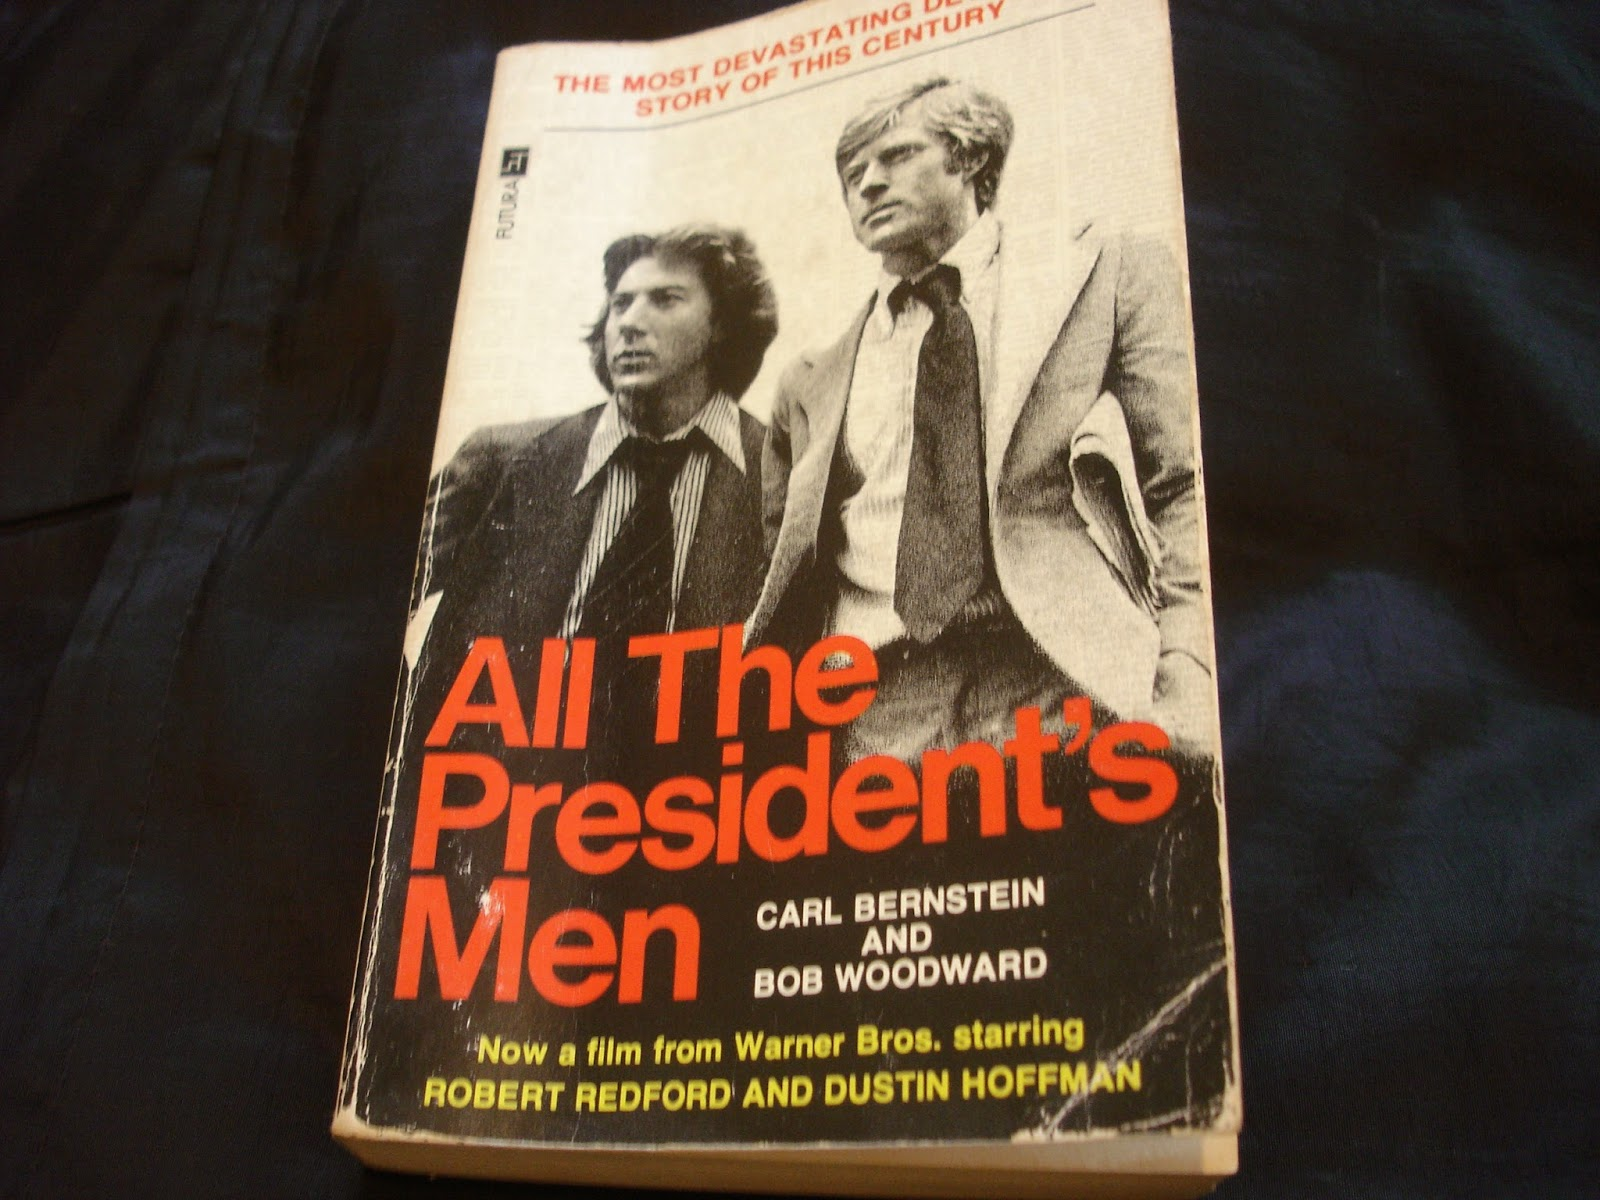 an analysis of the book all the presidents men by carl bernstein and bob woodward All the president's men by carl bernstein bob all the president's men (book, film) the characters of bob woodward and carl bernstein shared the rank of.